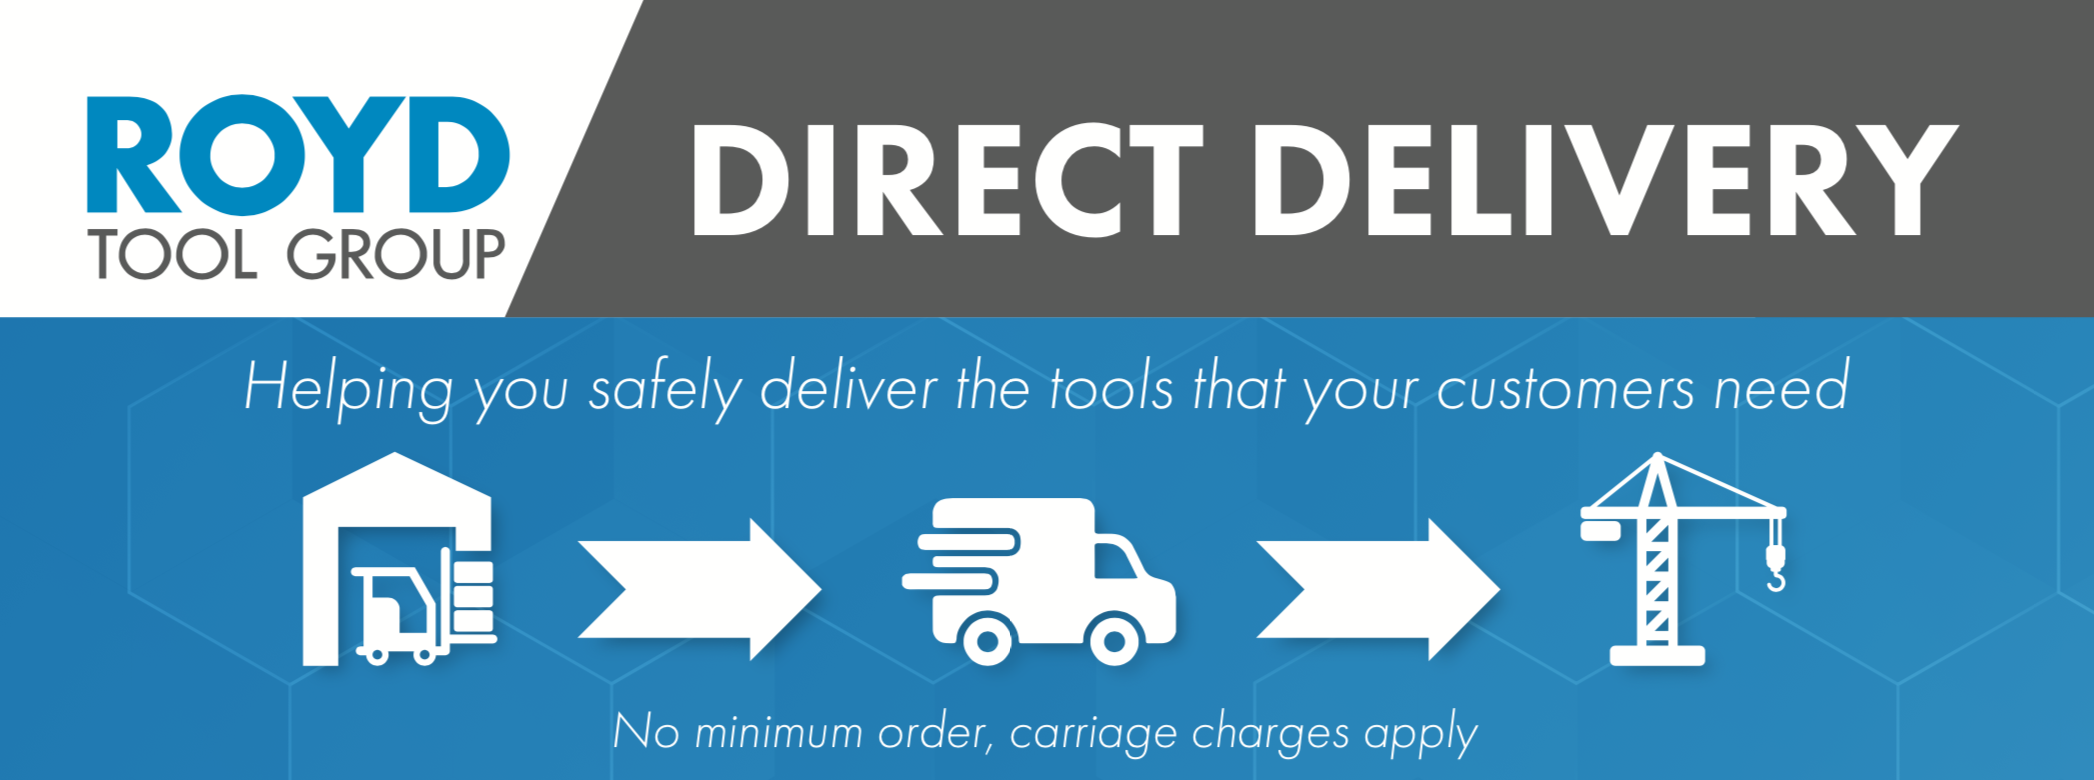 Royd provides direct delivery